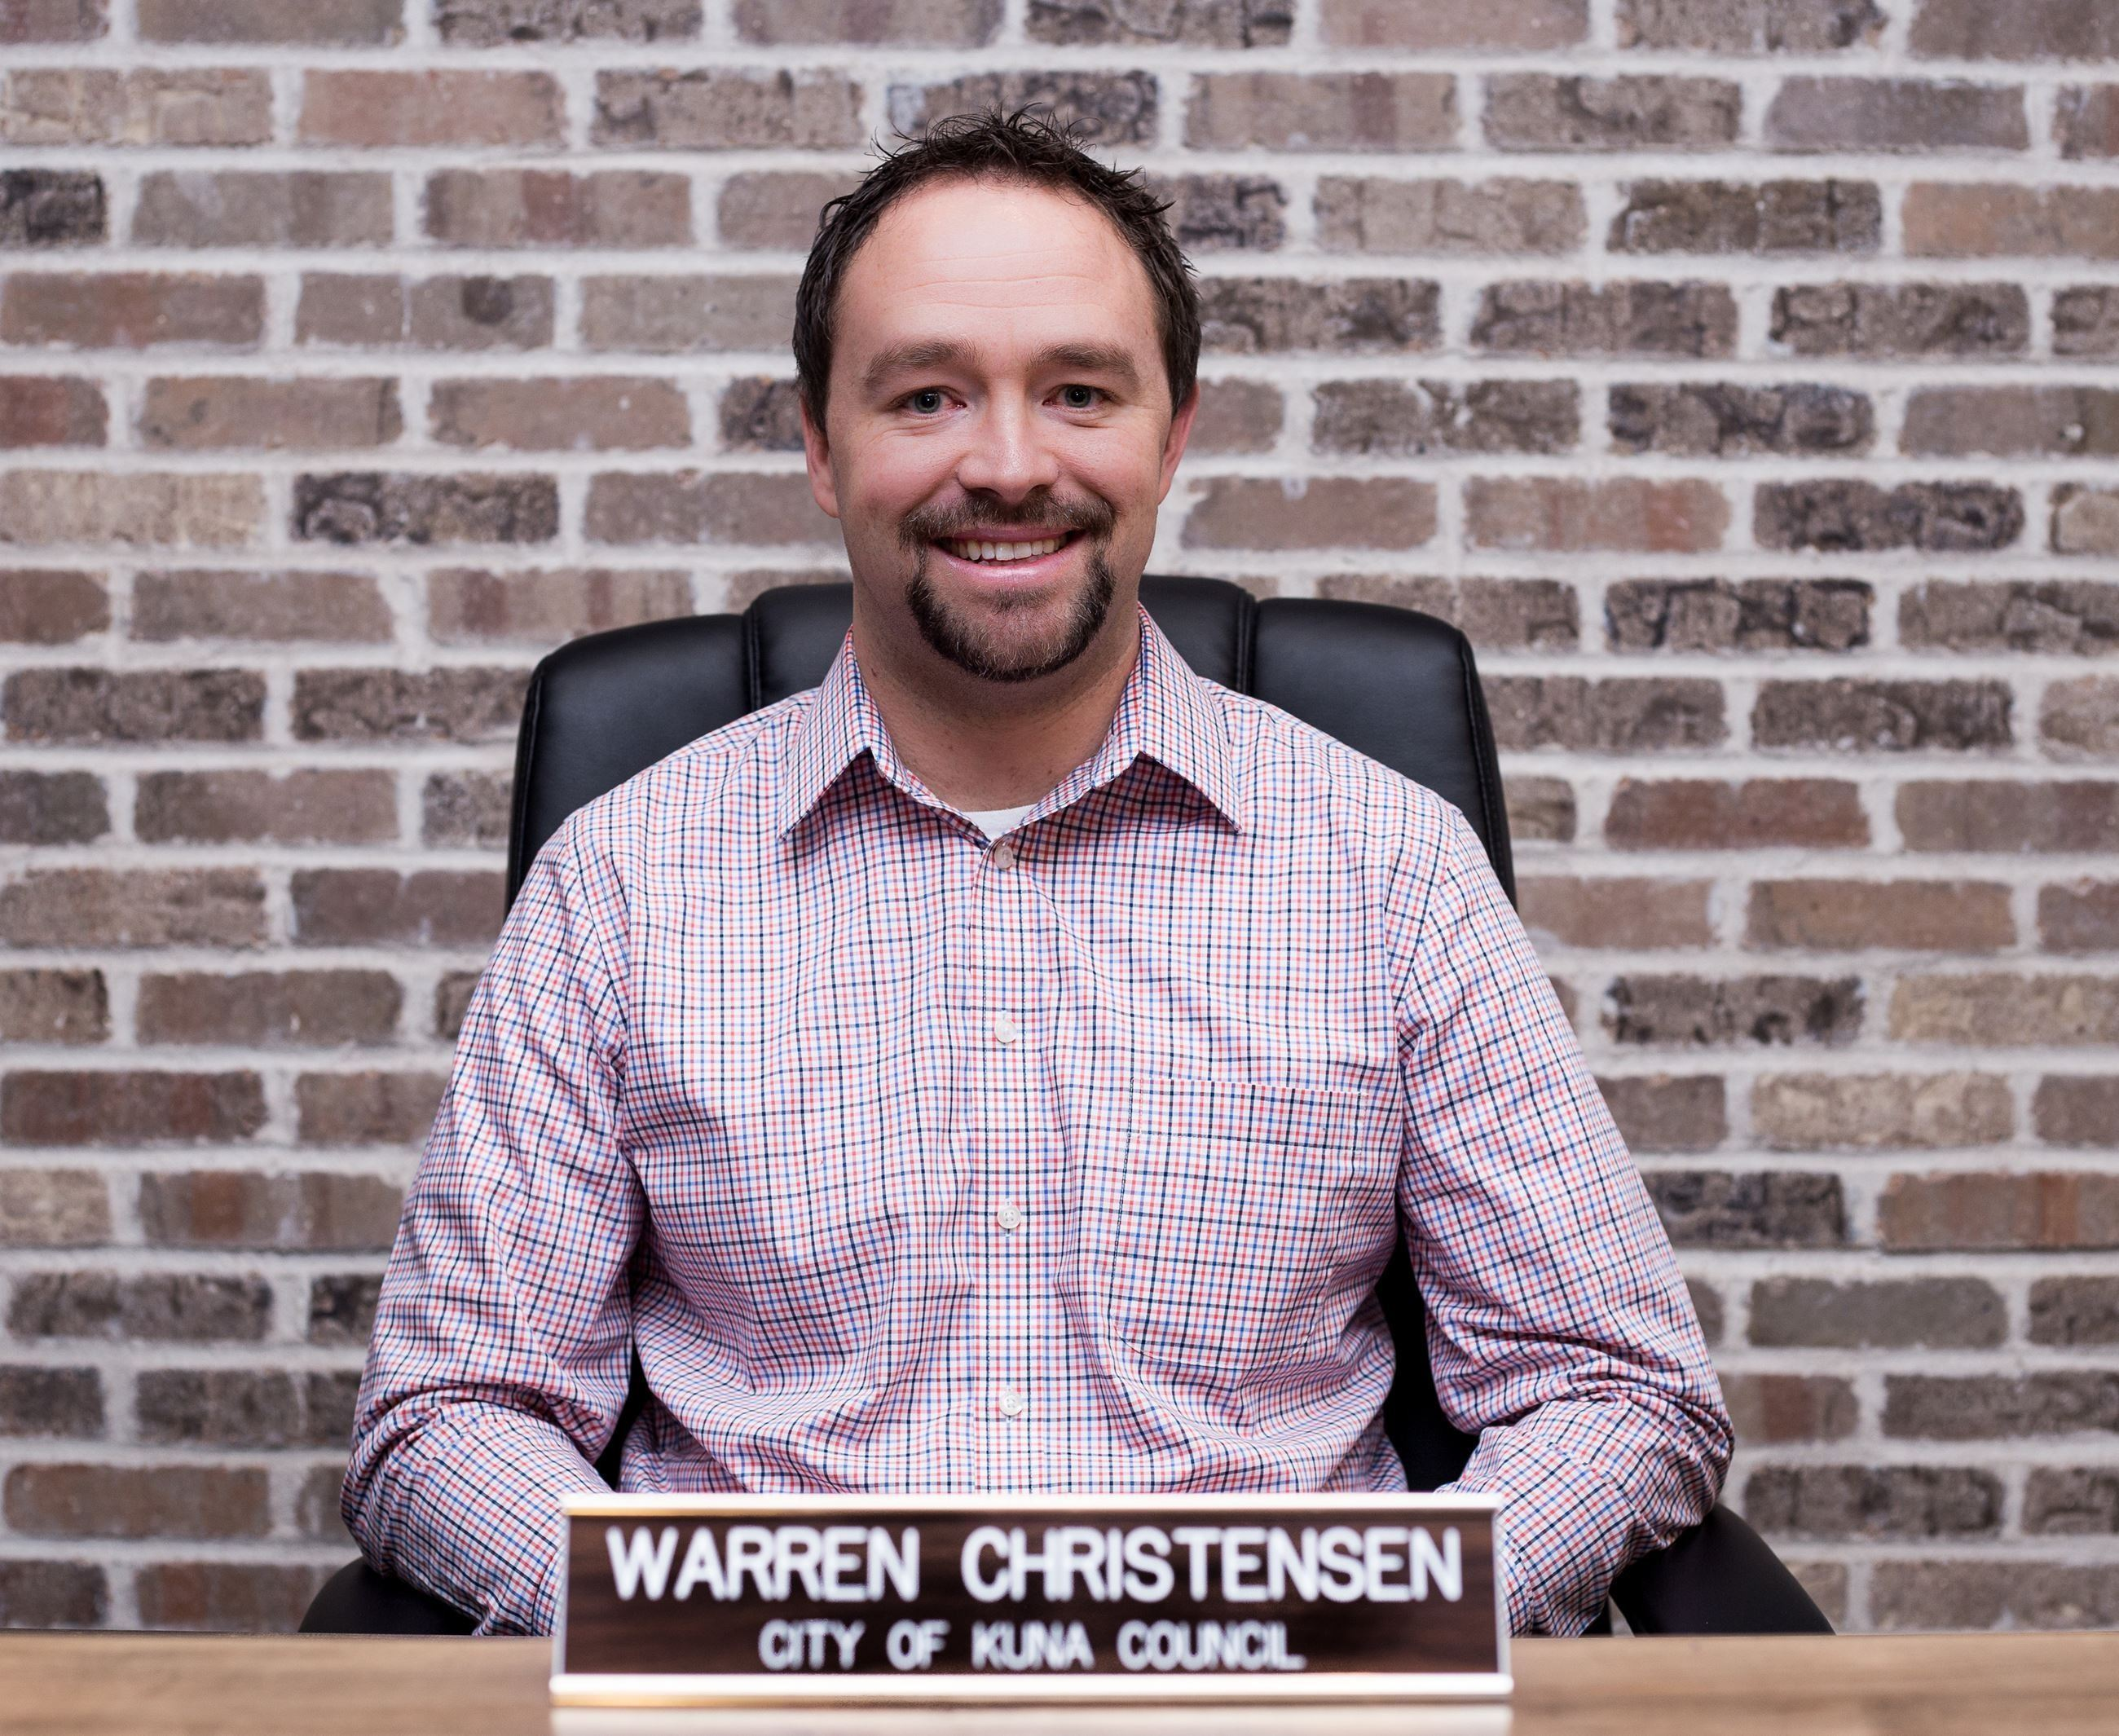 Warren Christensen Council Member 2018